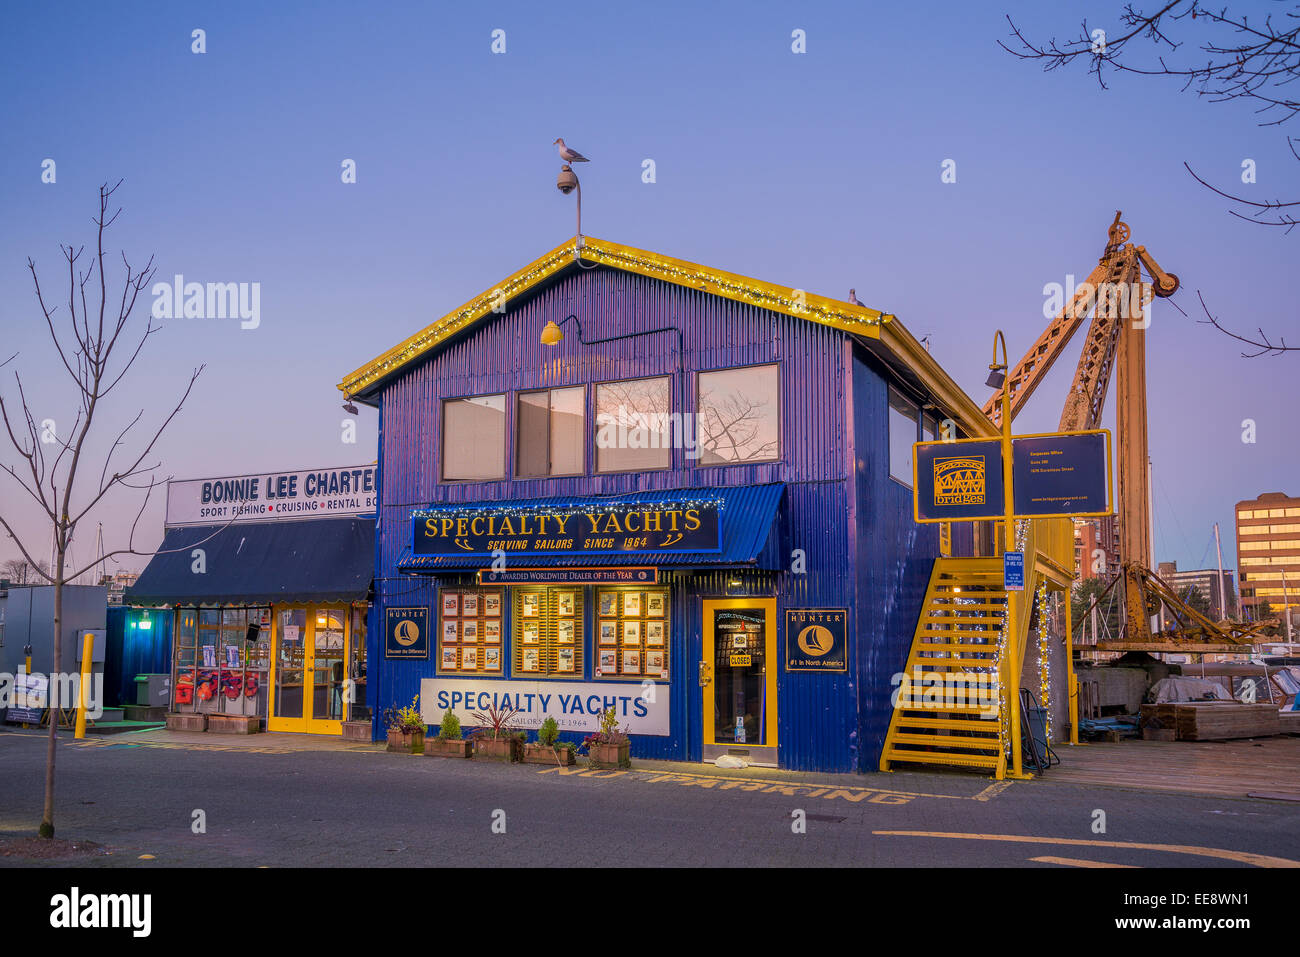 Specialty Yachts building, Granville Island, Vancouver, British Columbia, Canada, - Stock Image